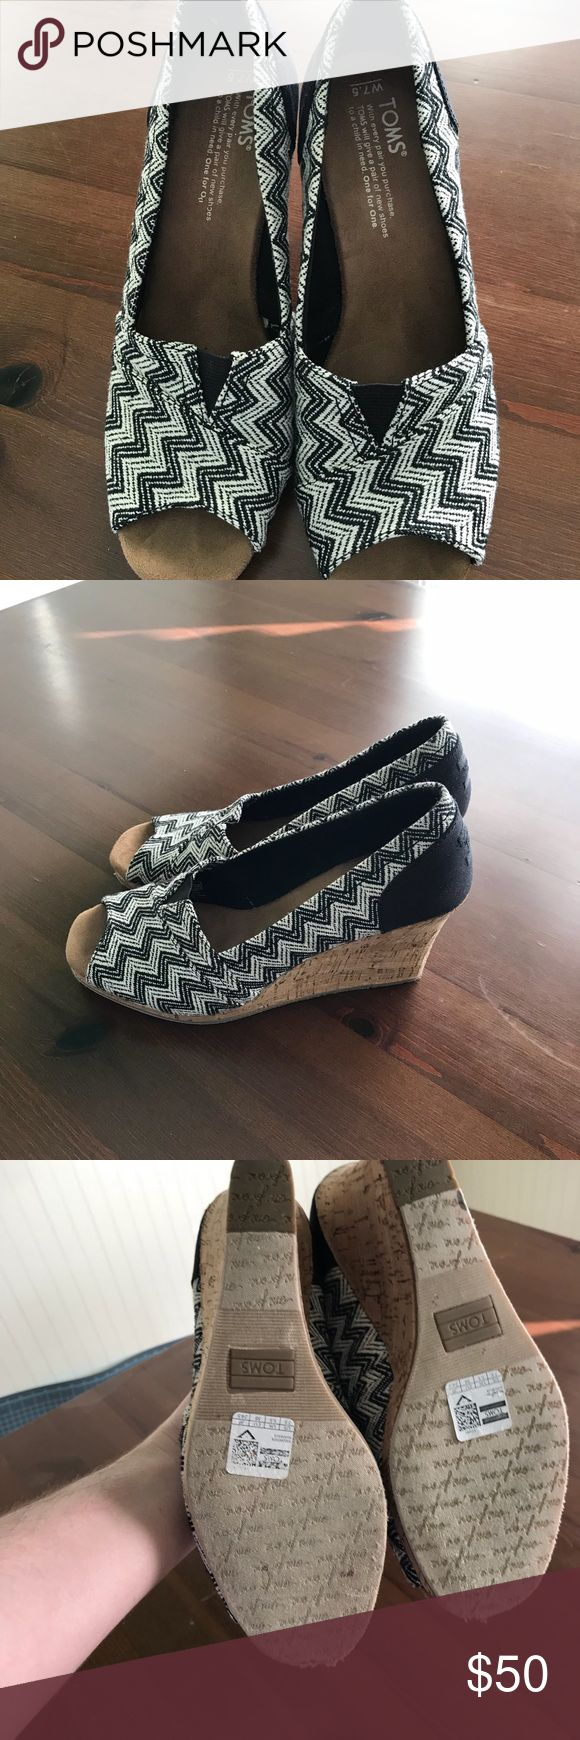 Black and White Chevron Toms Cute wedges in black and white chevron, barely worn as can be seen by the bottoms. Toms Shoes